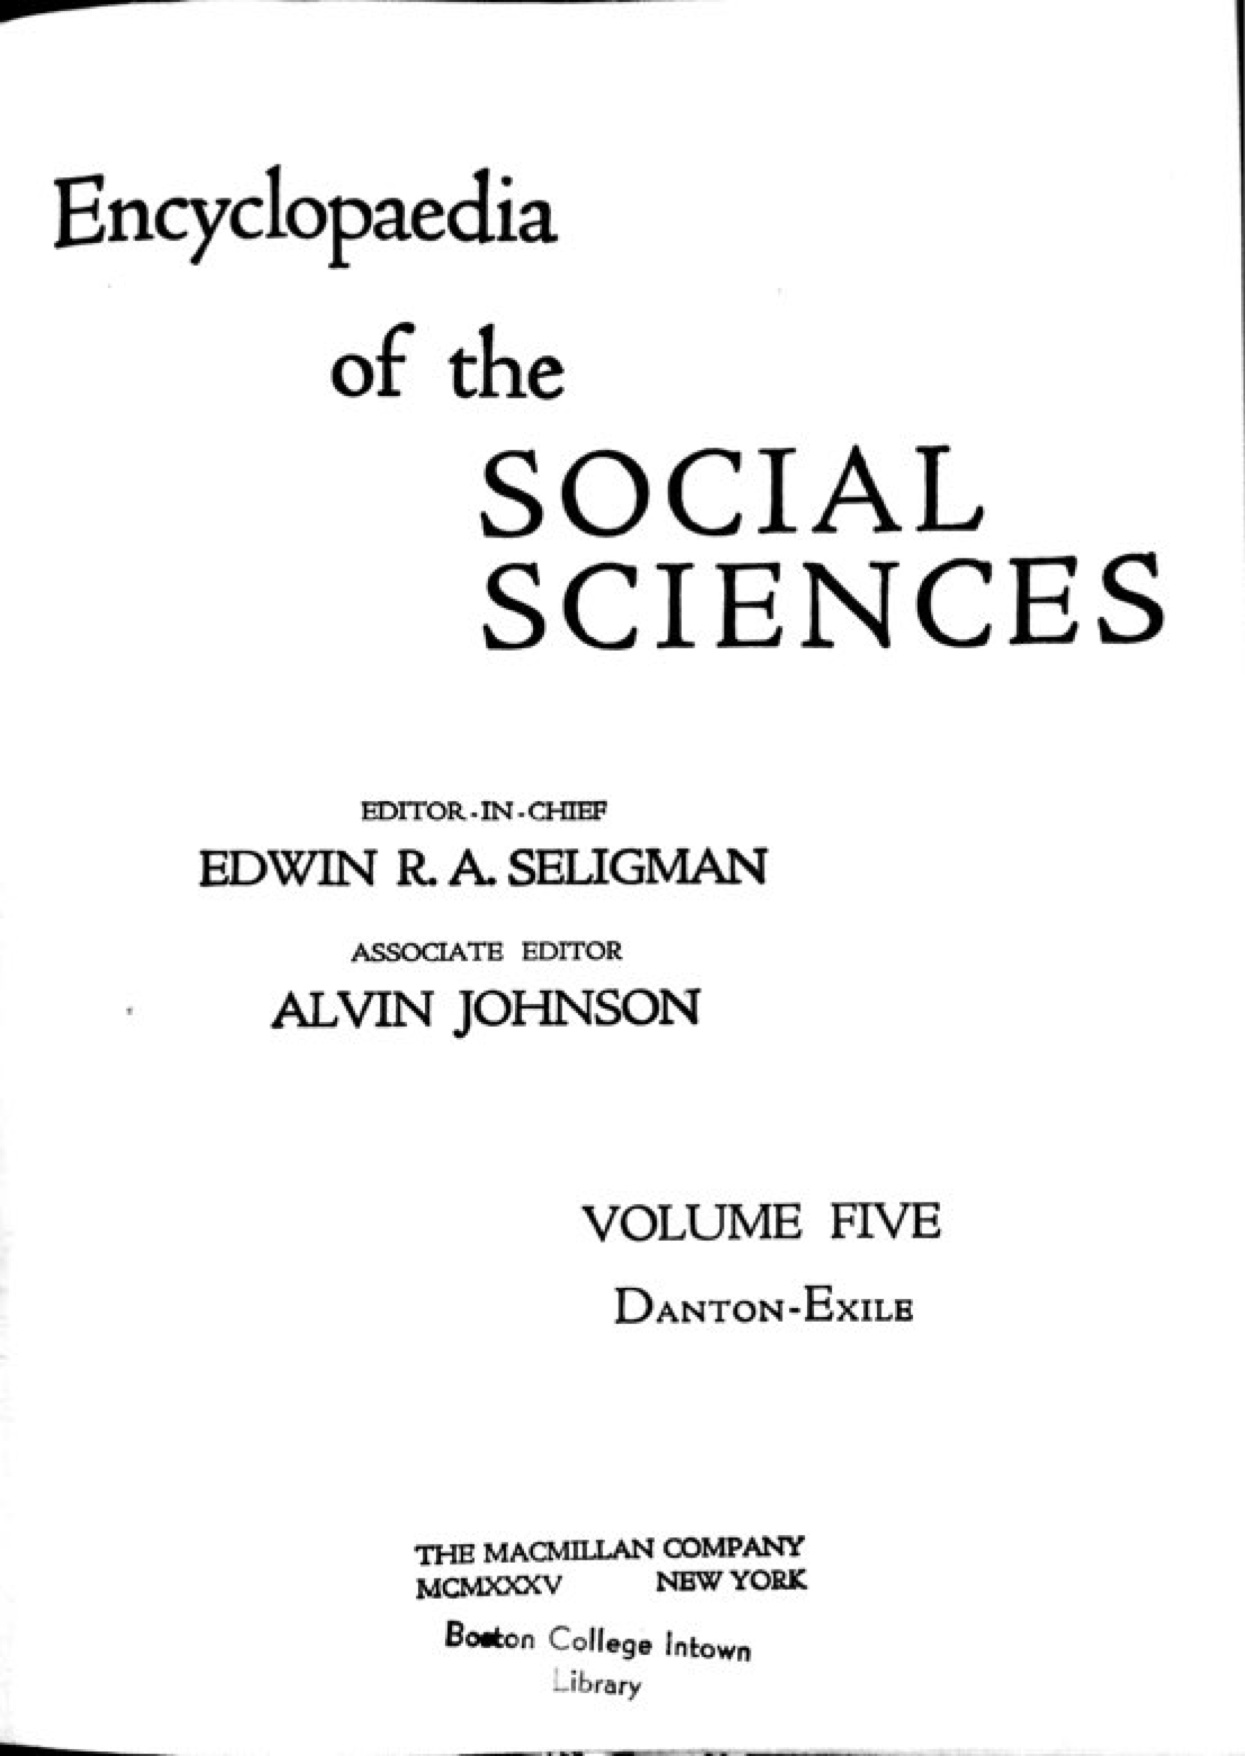 Cassirer On Enlightenment In The Encyclopedia Of The Social Sciences